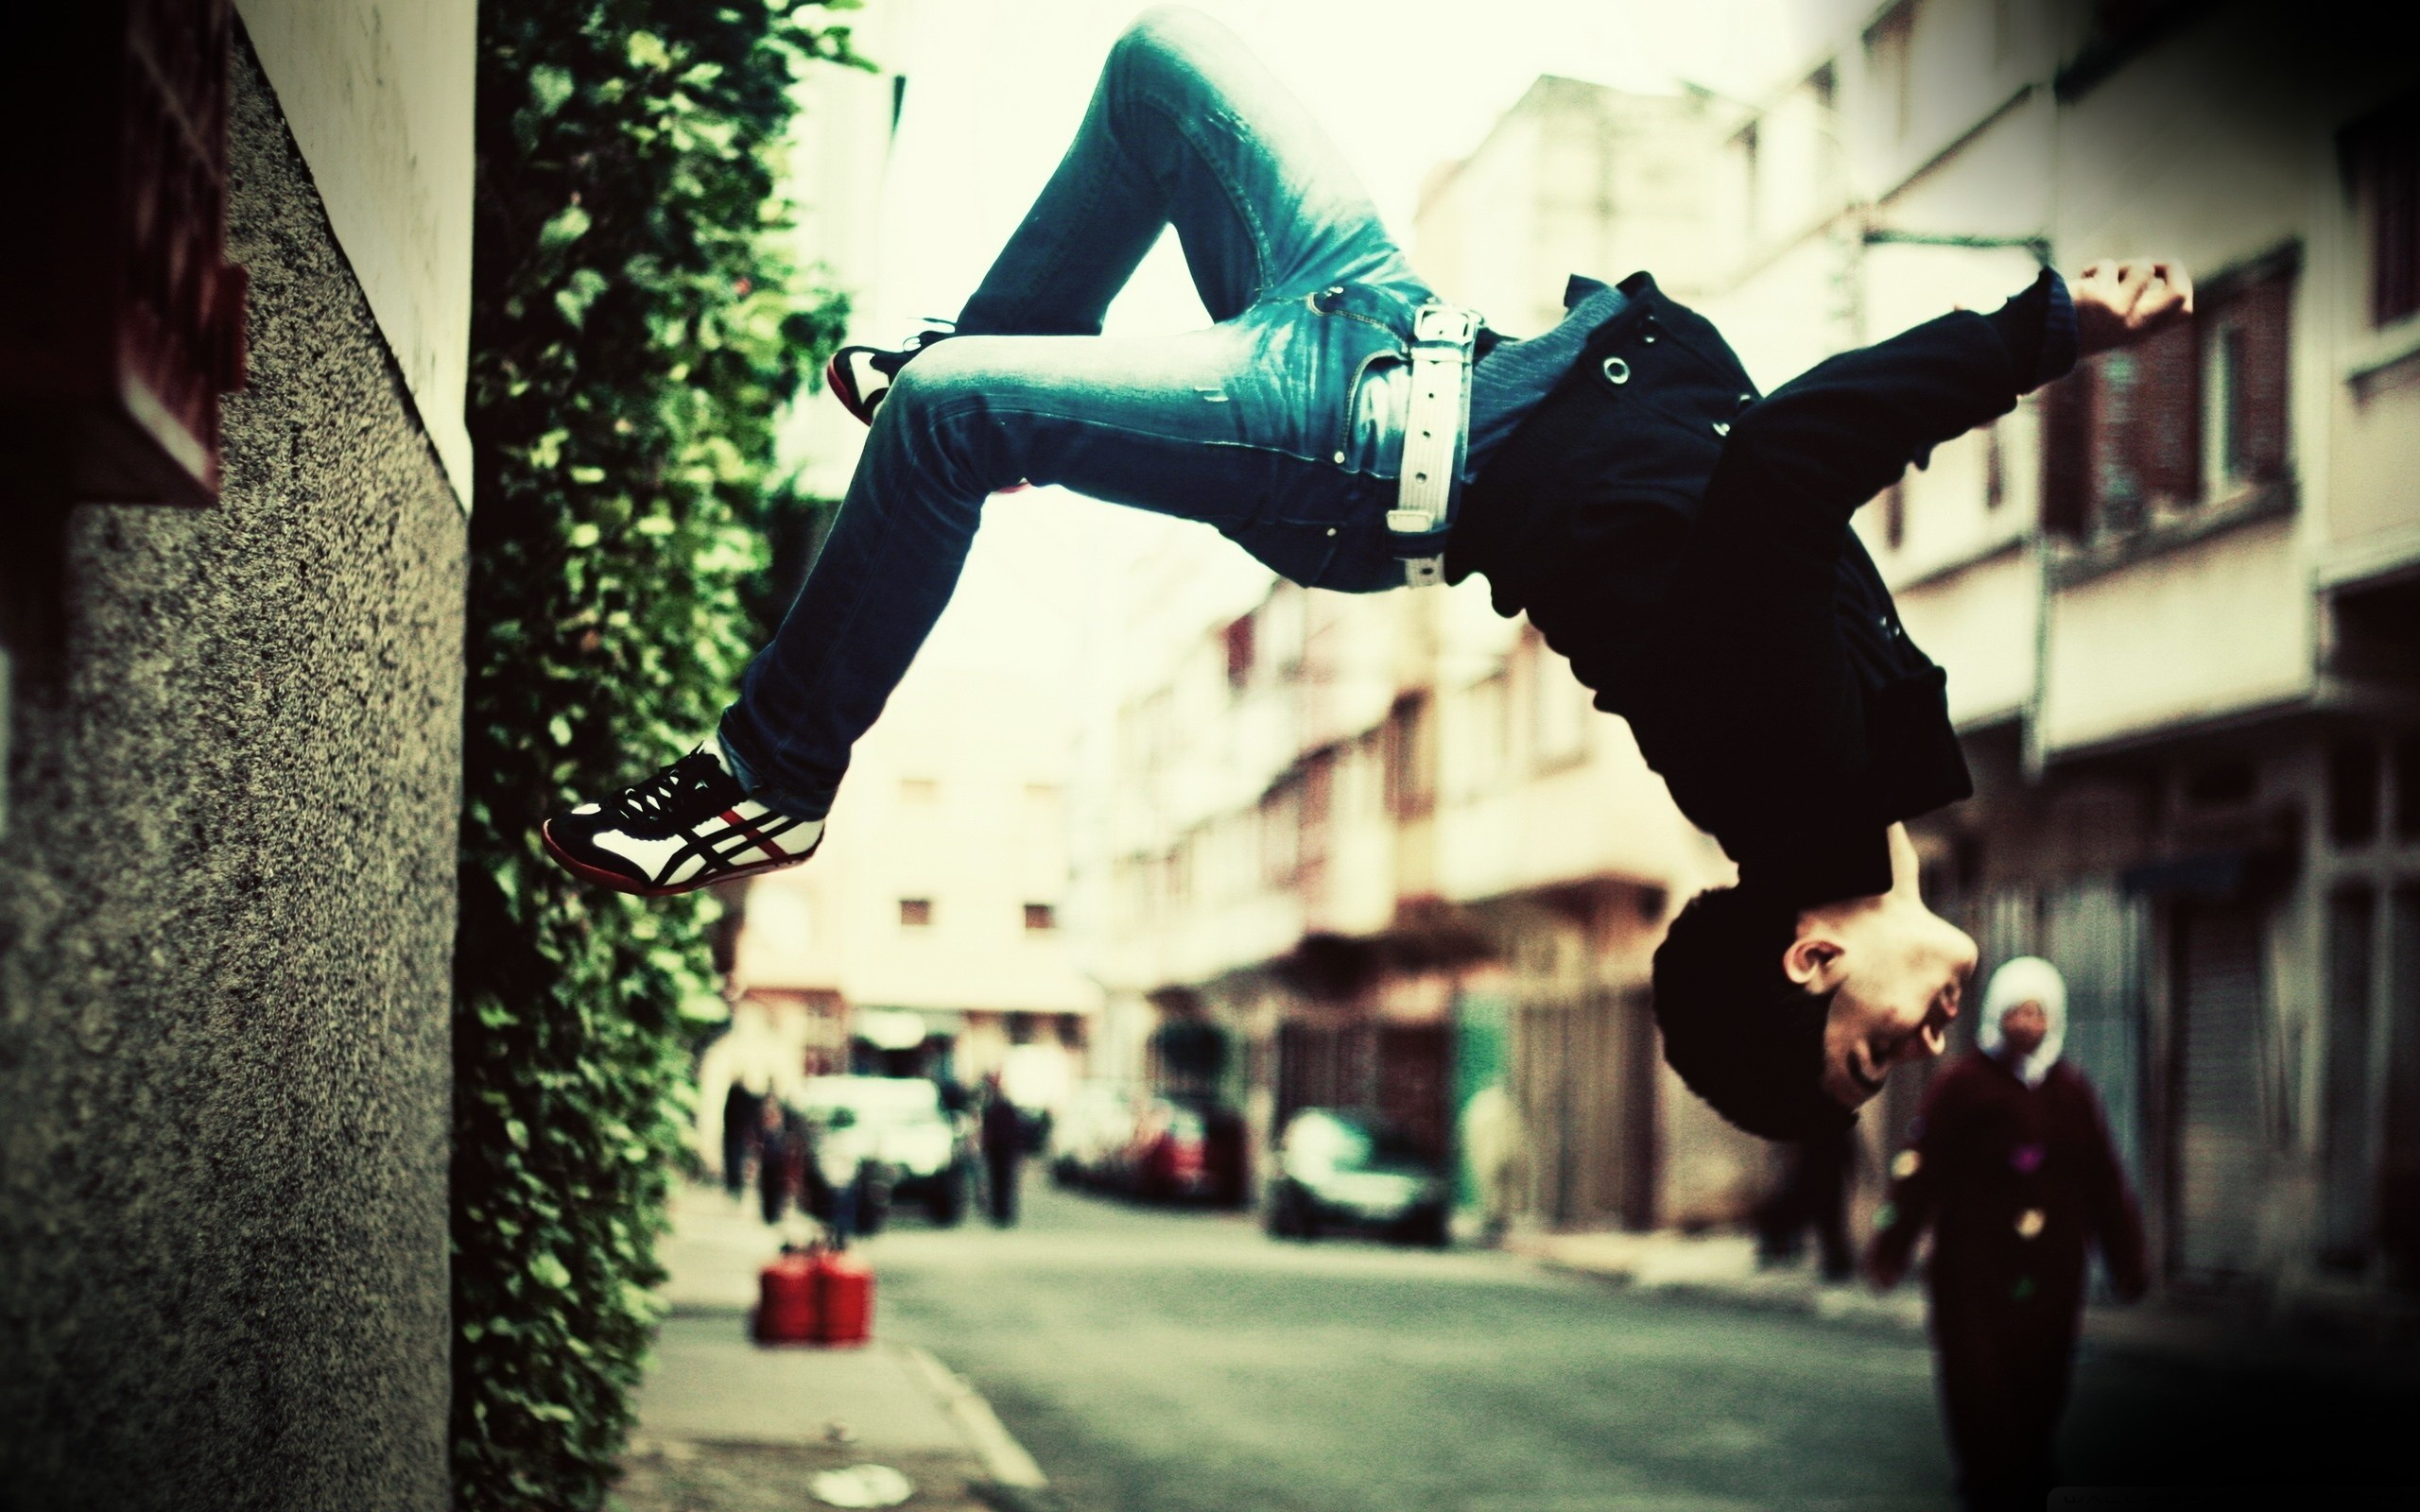 jumping parkour HD Wallpaper